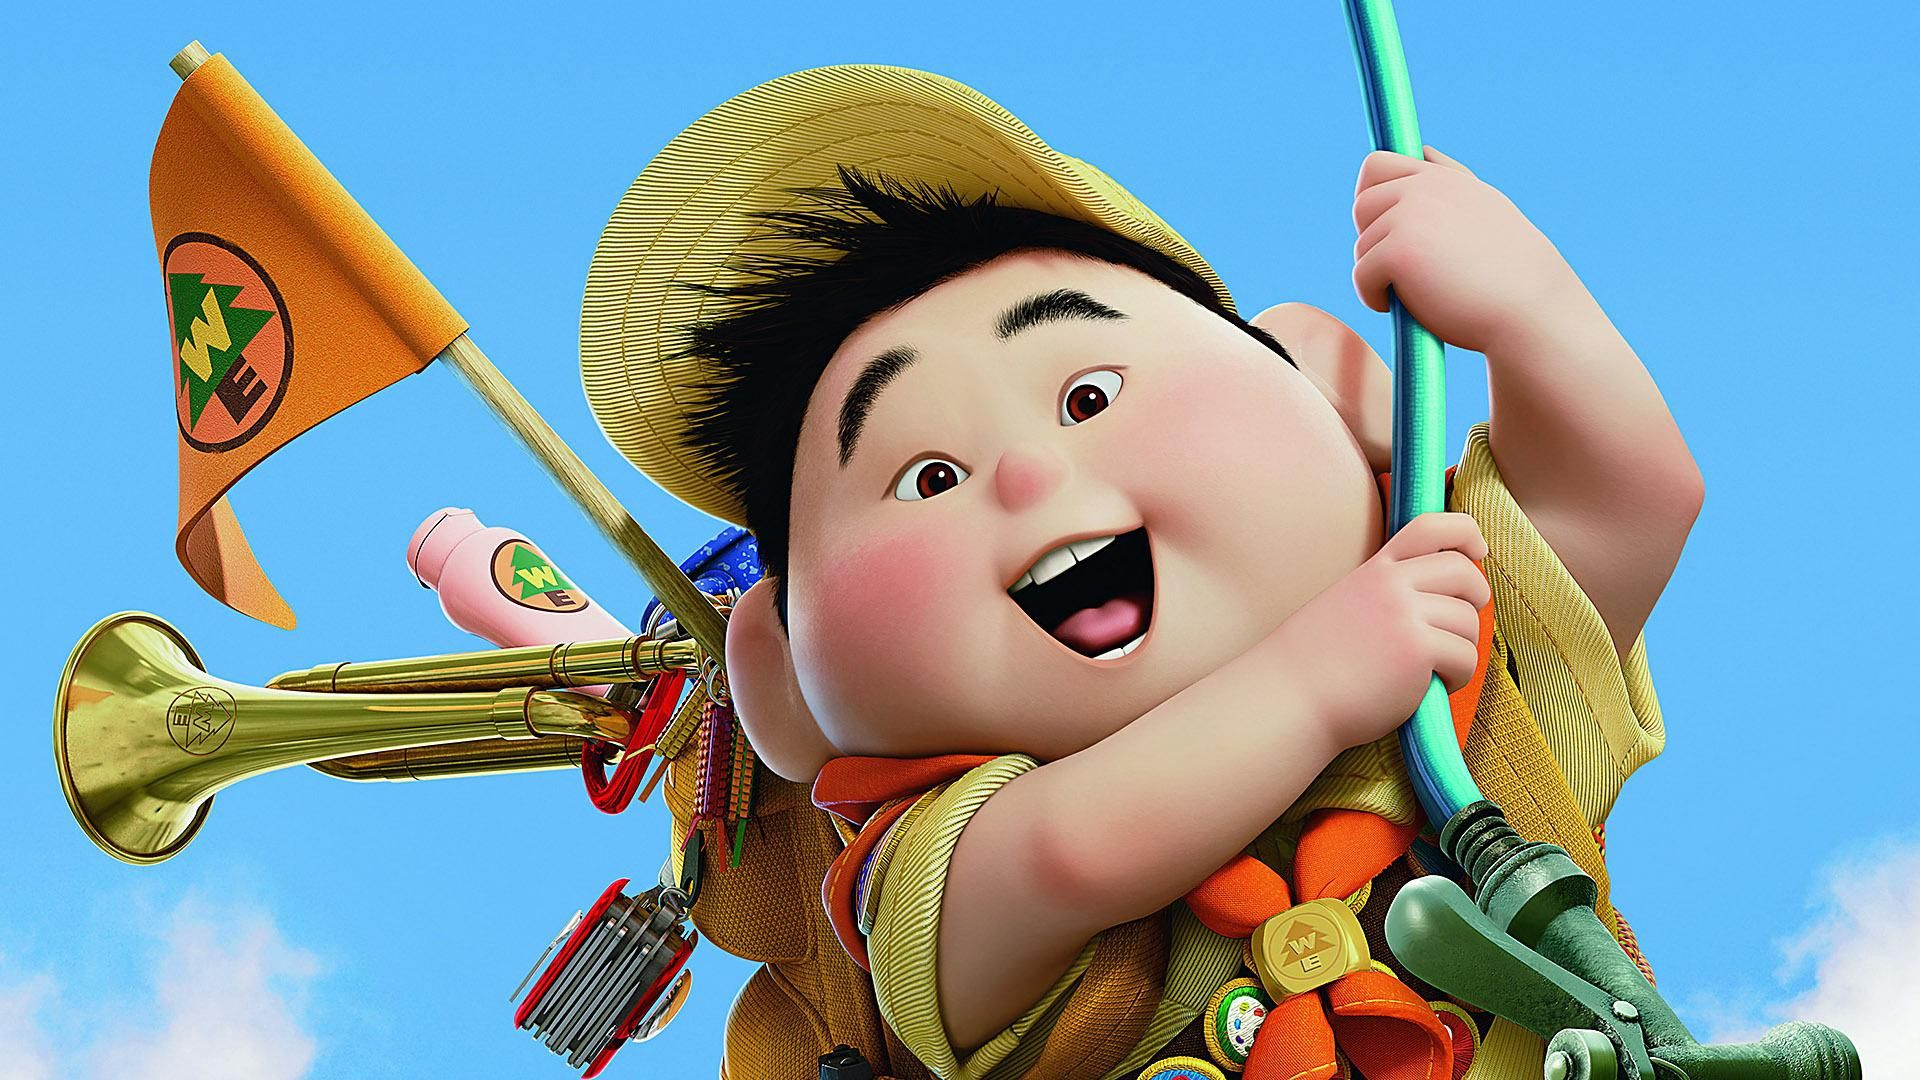 UP Movie 3D Characters Wallpapers HD Widescreen